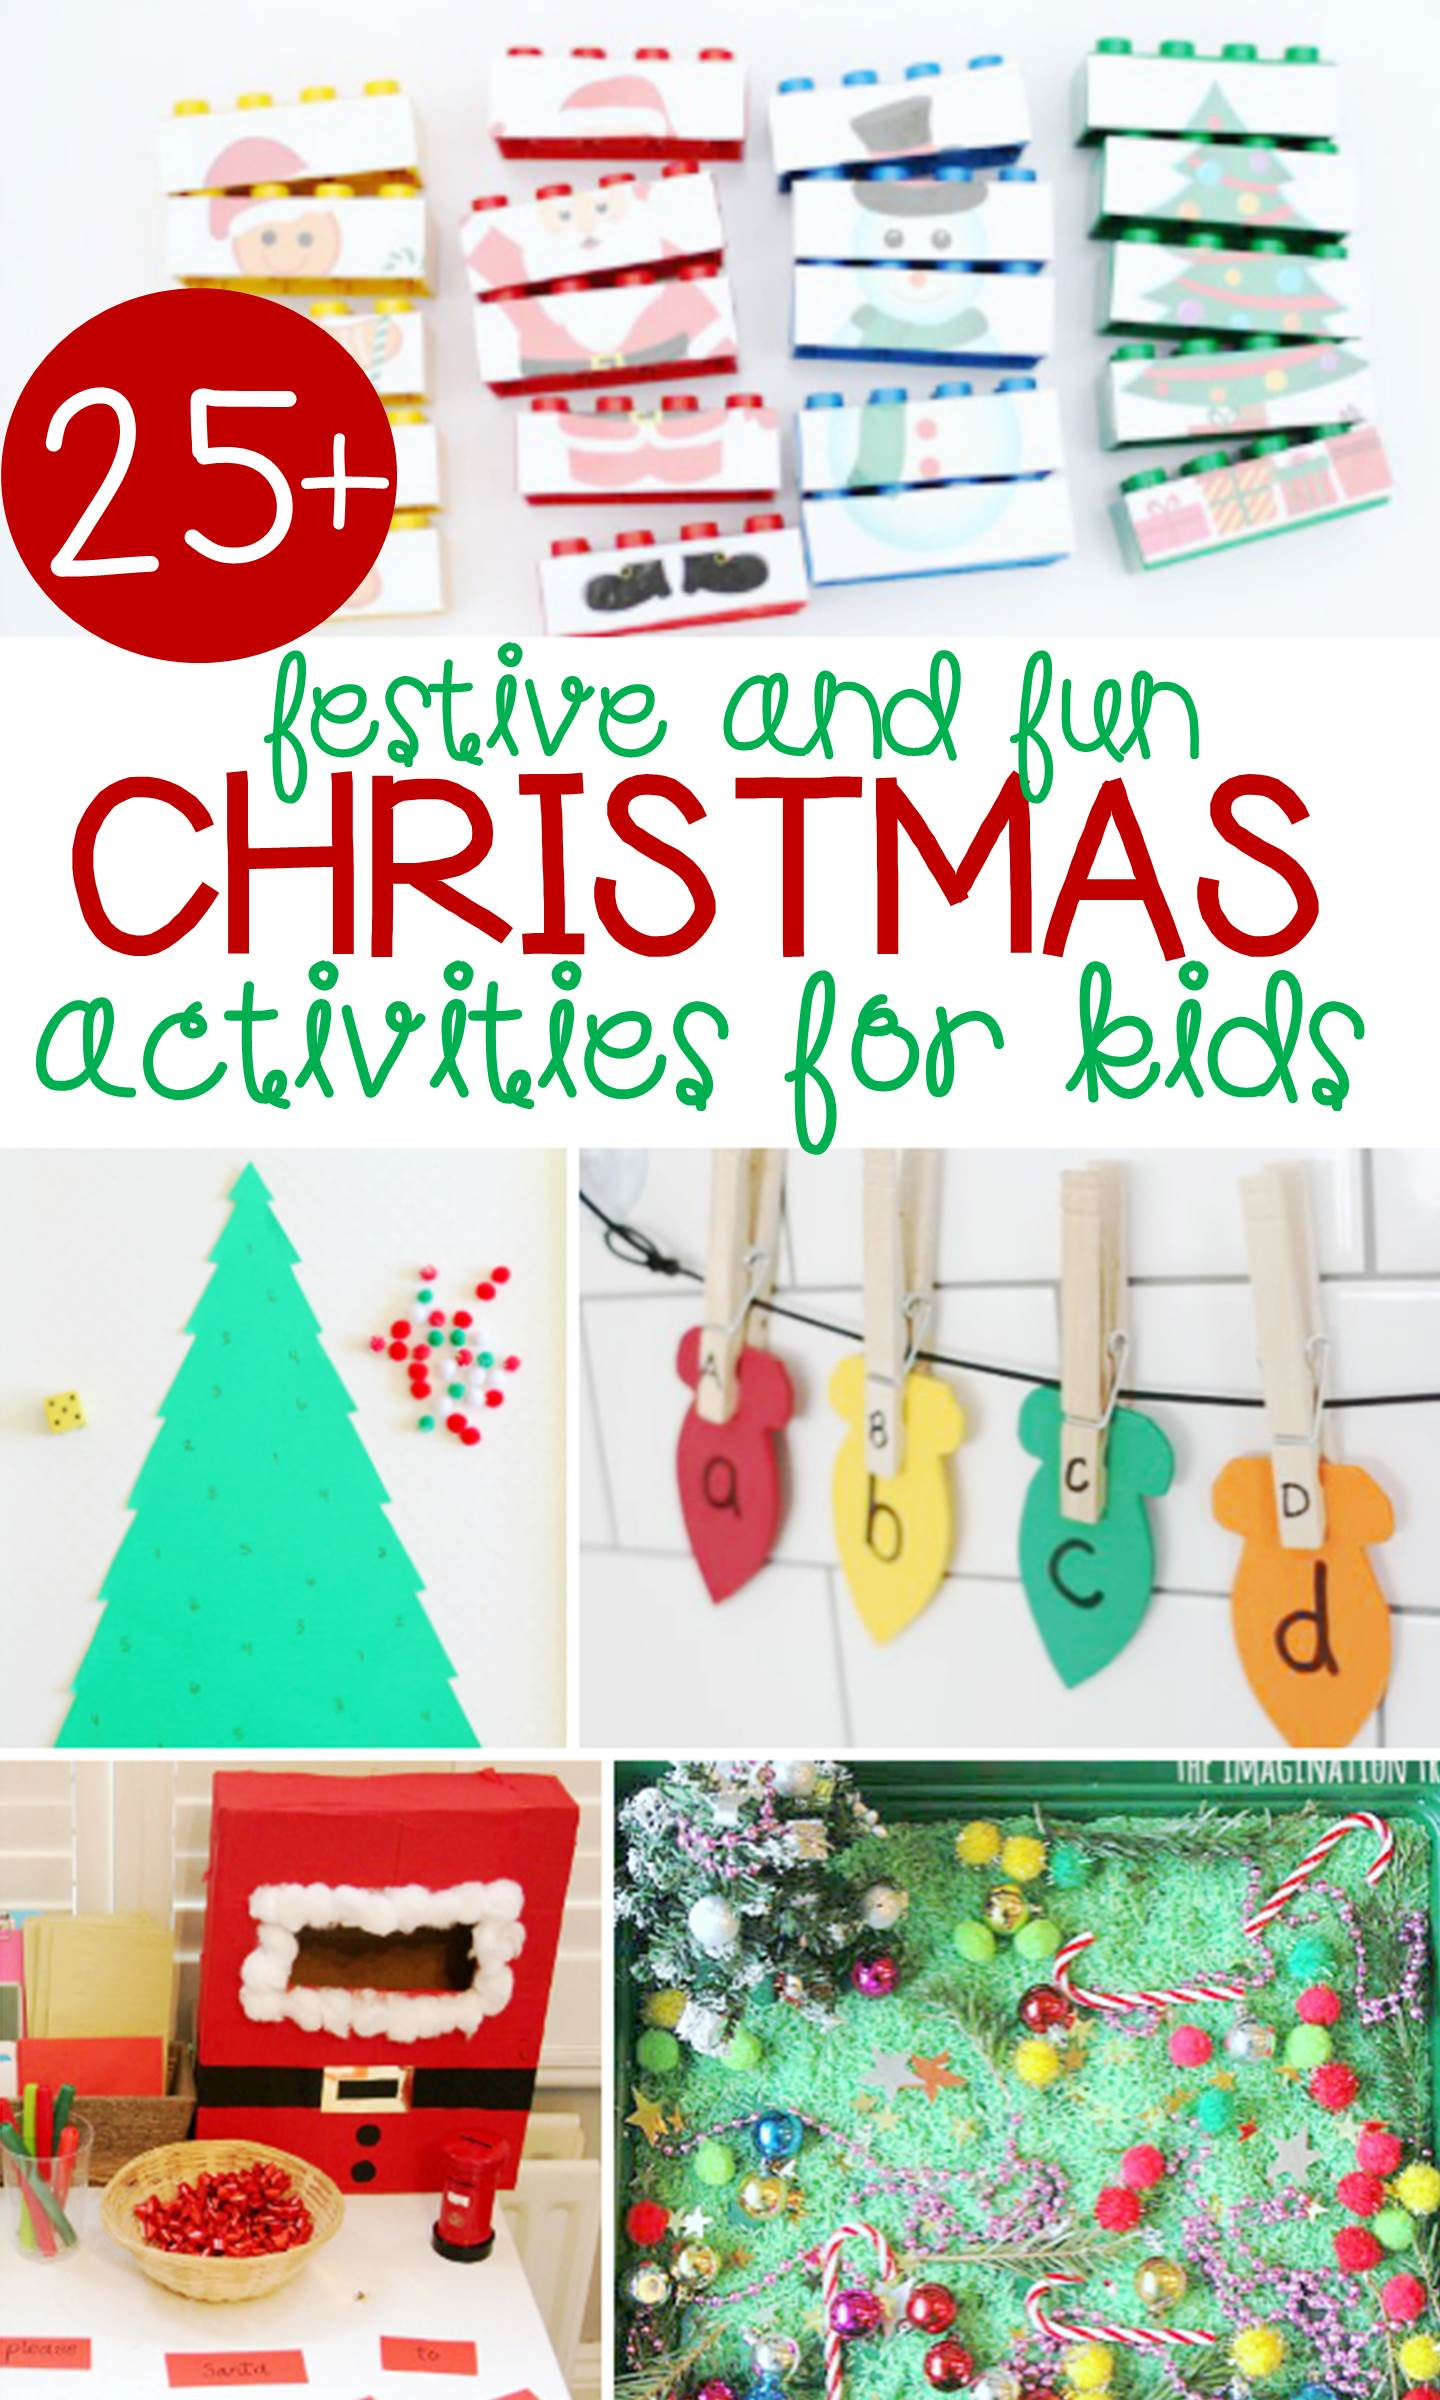 Holiday Projects For Kids  Festive and Fun Christmas Activities for Kids The